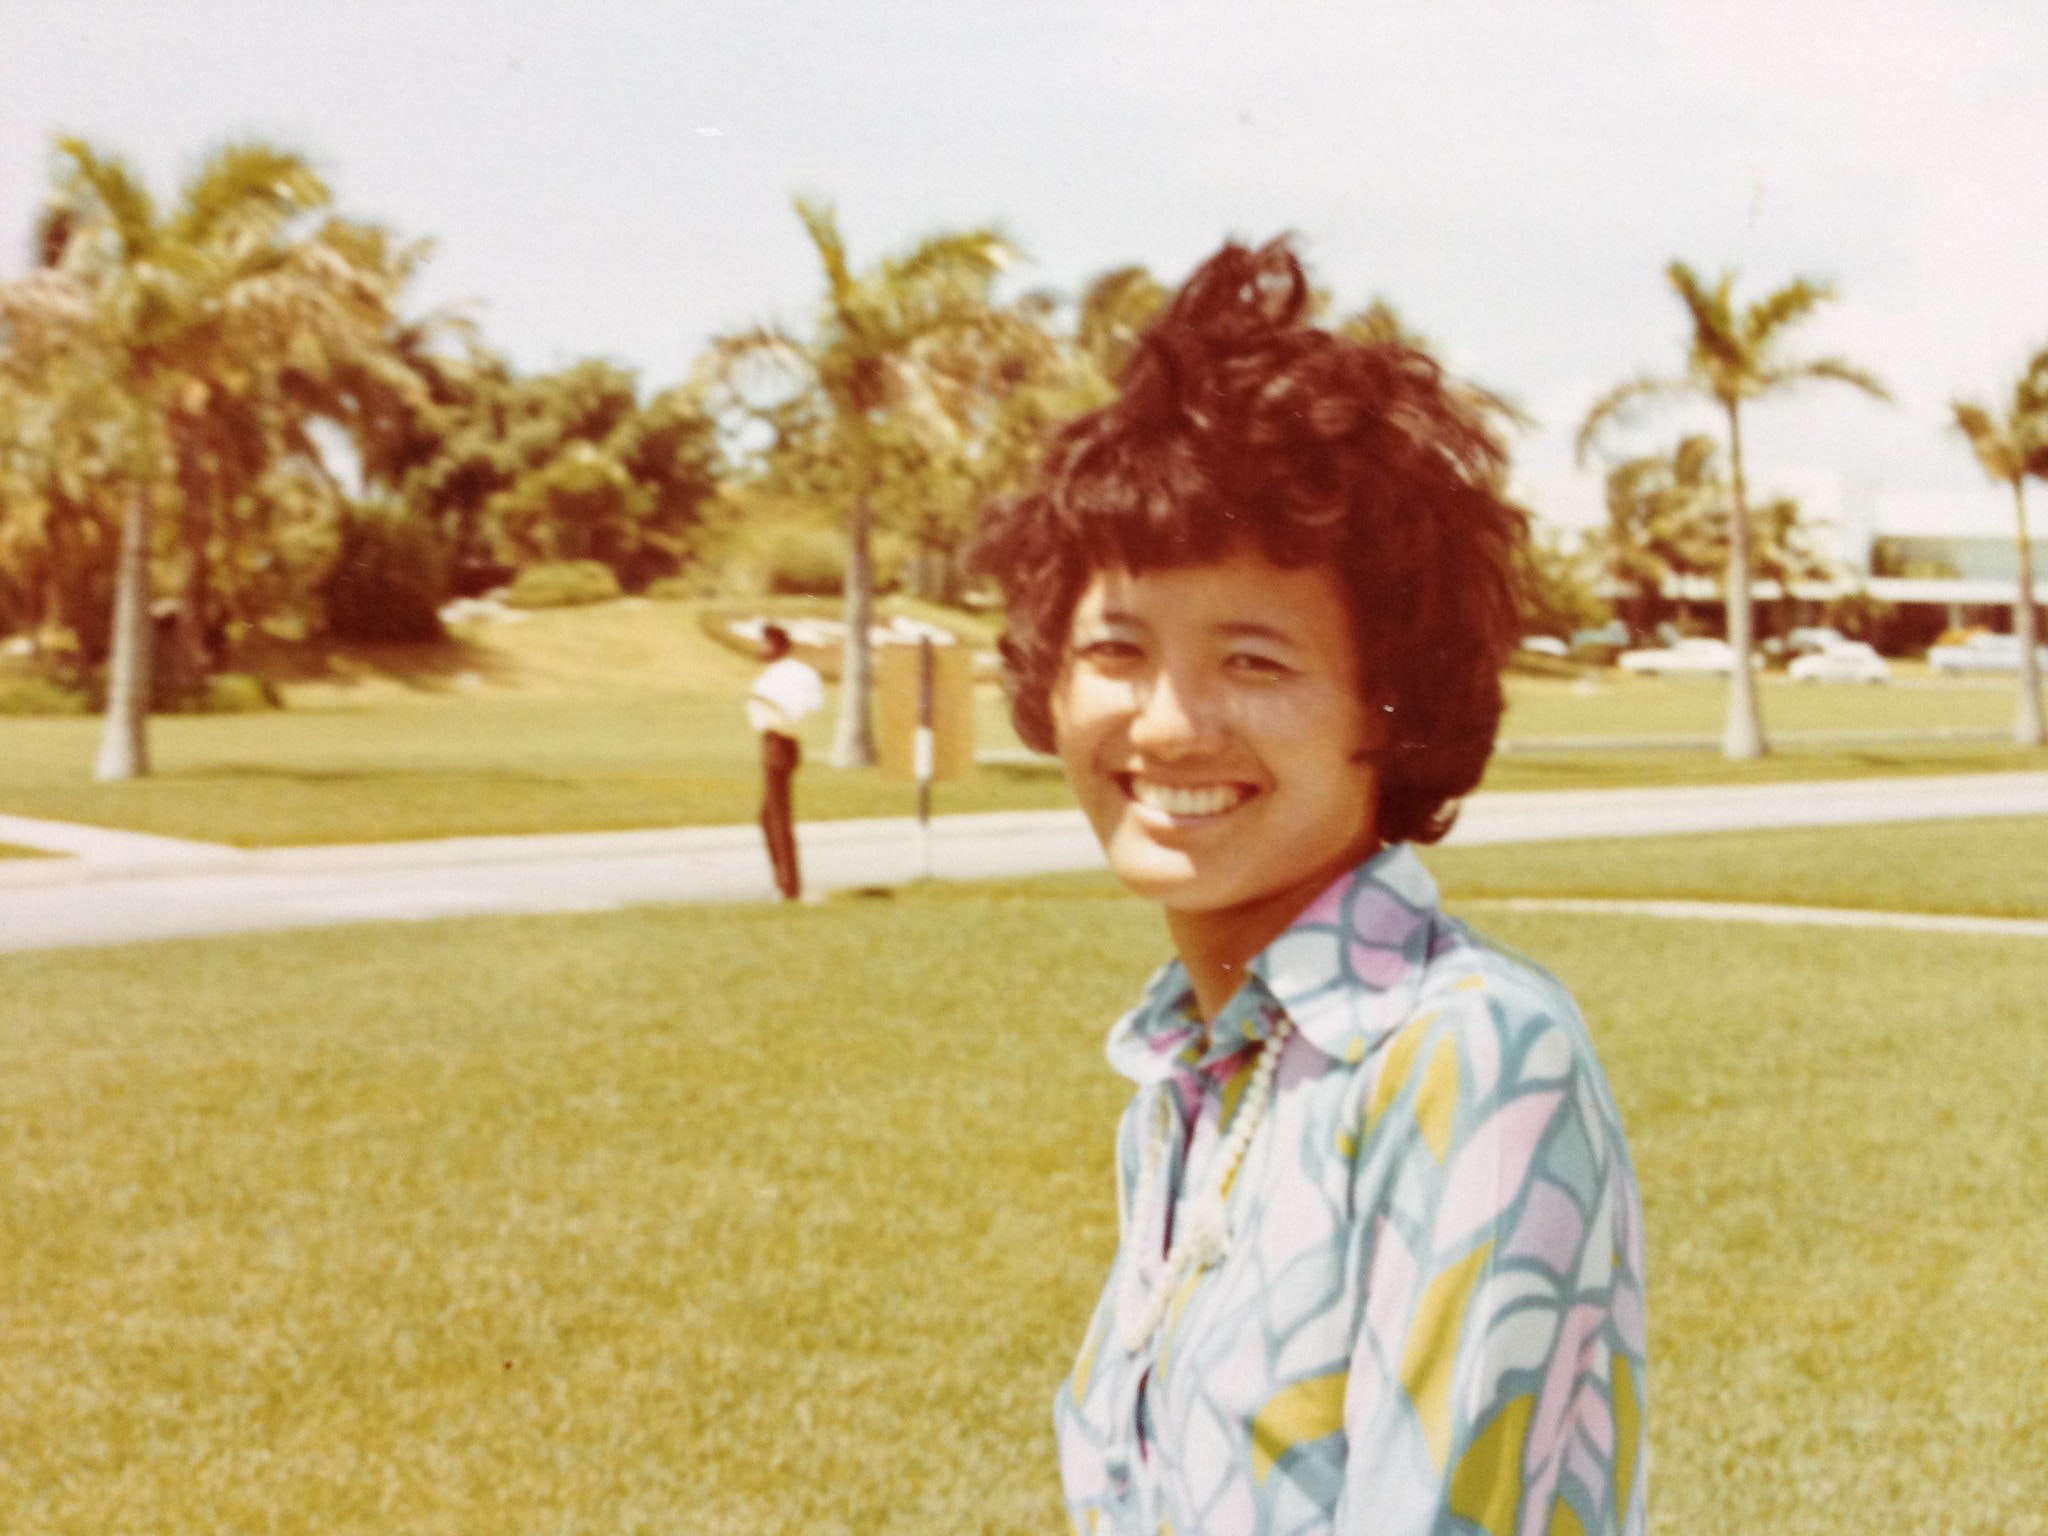 Headshot portrait of Denise Khor's mother outdoors in the Bahamas with palm trees in the background